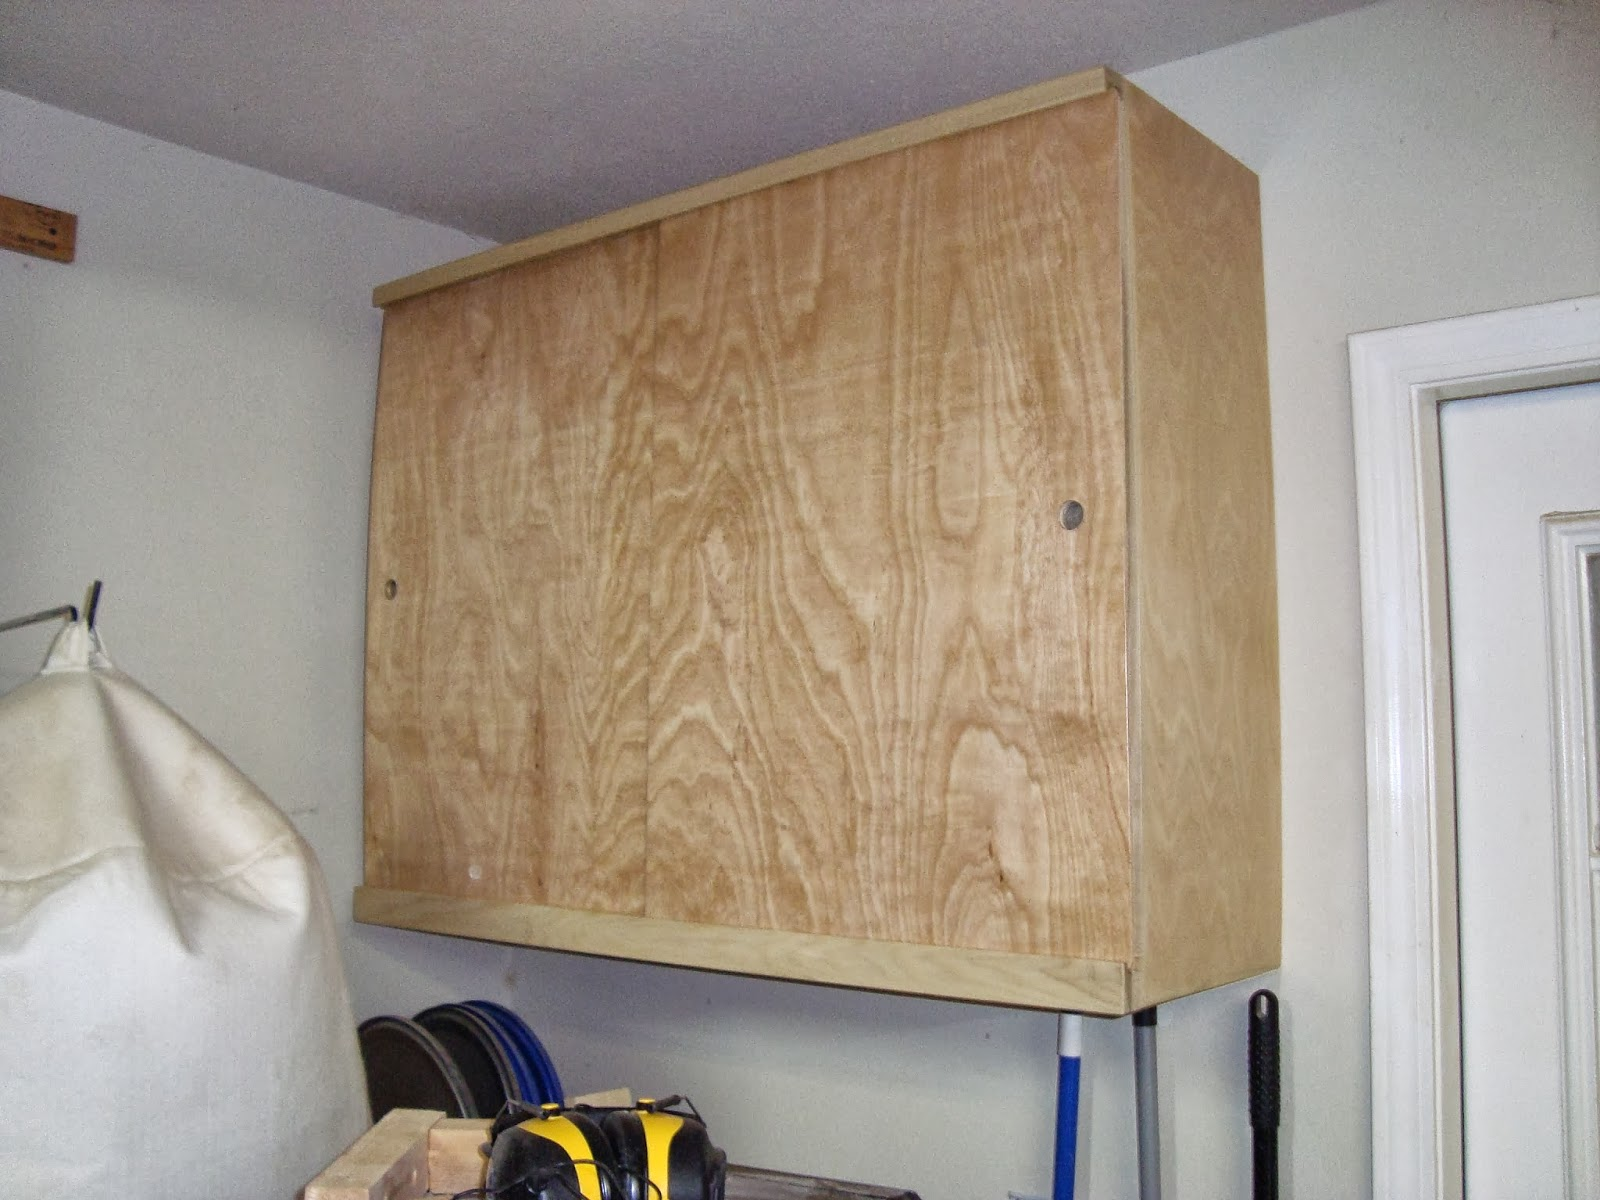 are panel hollow core track in closet is laguna colonist the cabinet style you looking called hills pin bypass design doors for sliding tracks smooth